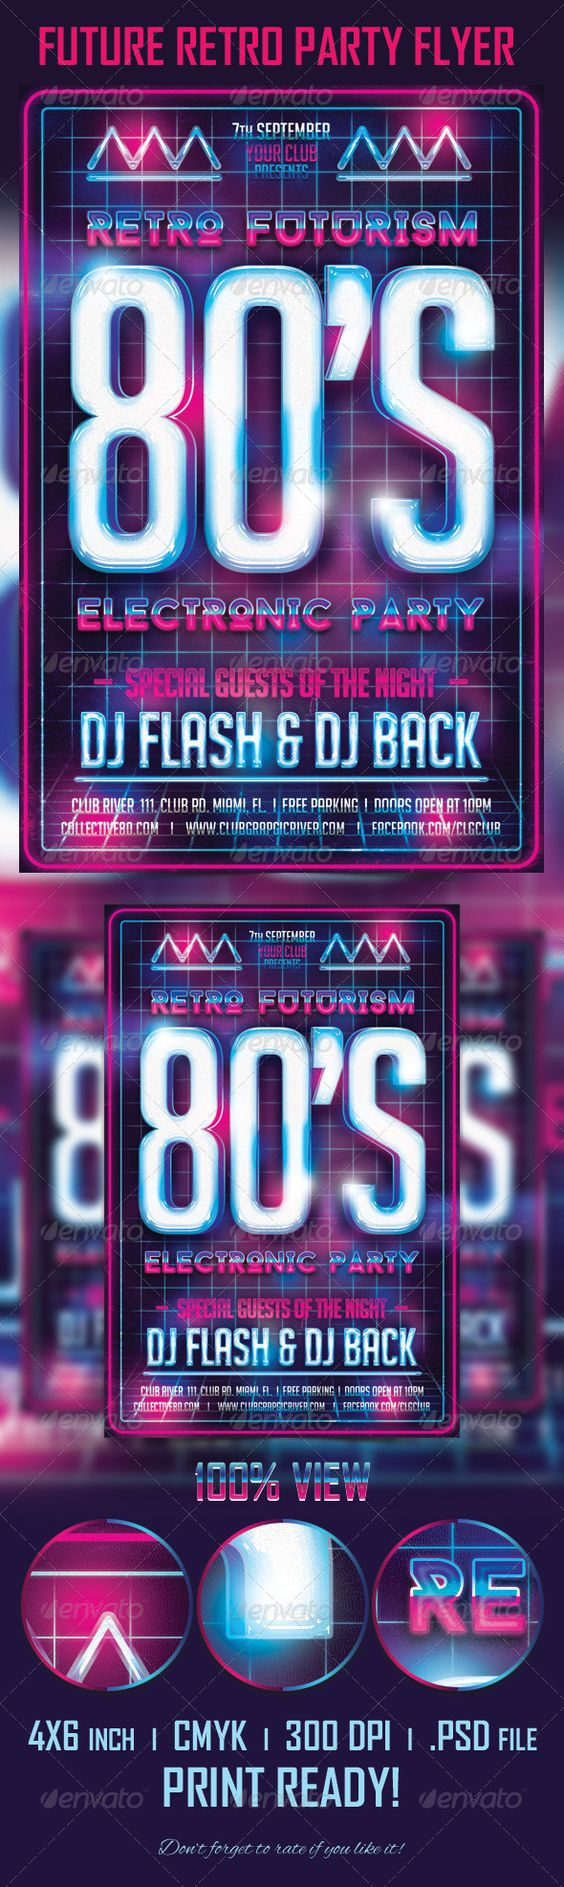 future retro party flyer template flyer template retro party future retro party flyer template make your own flyer future retro party flyer